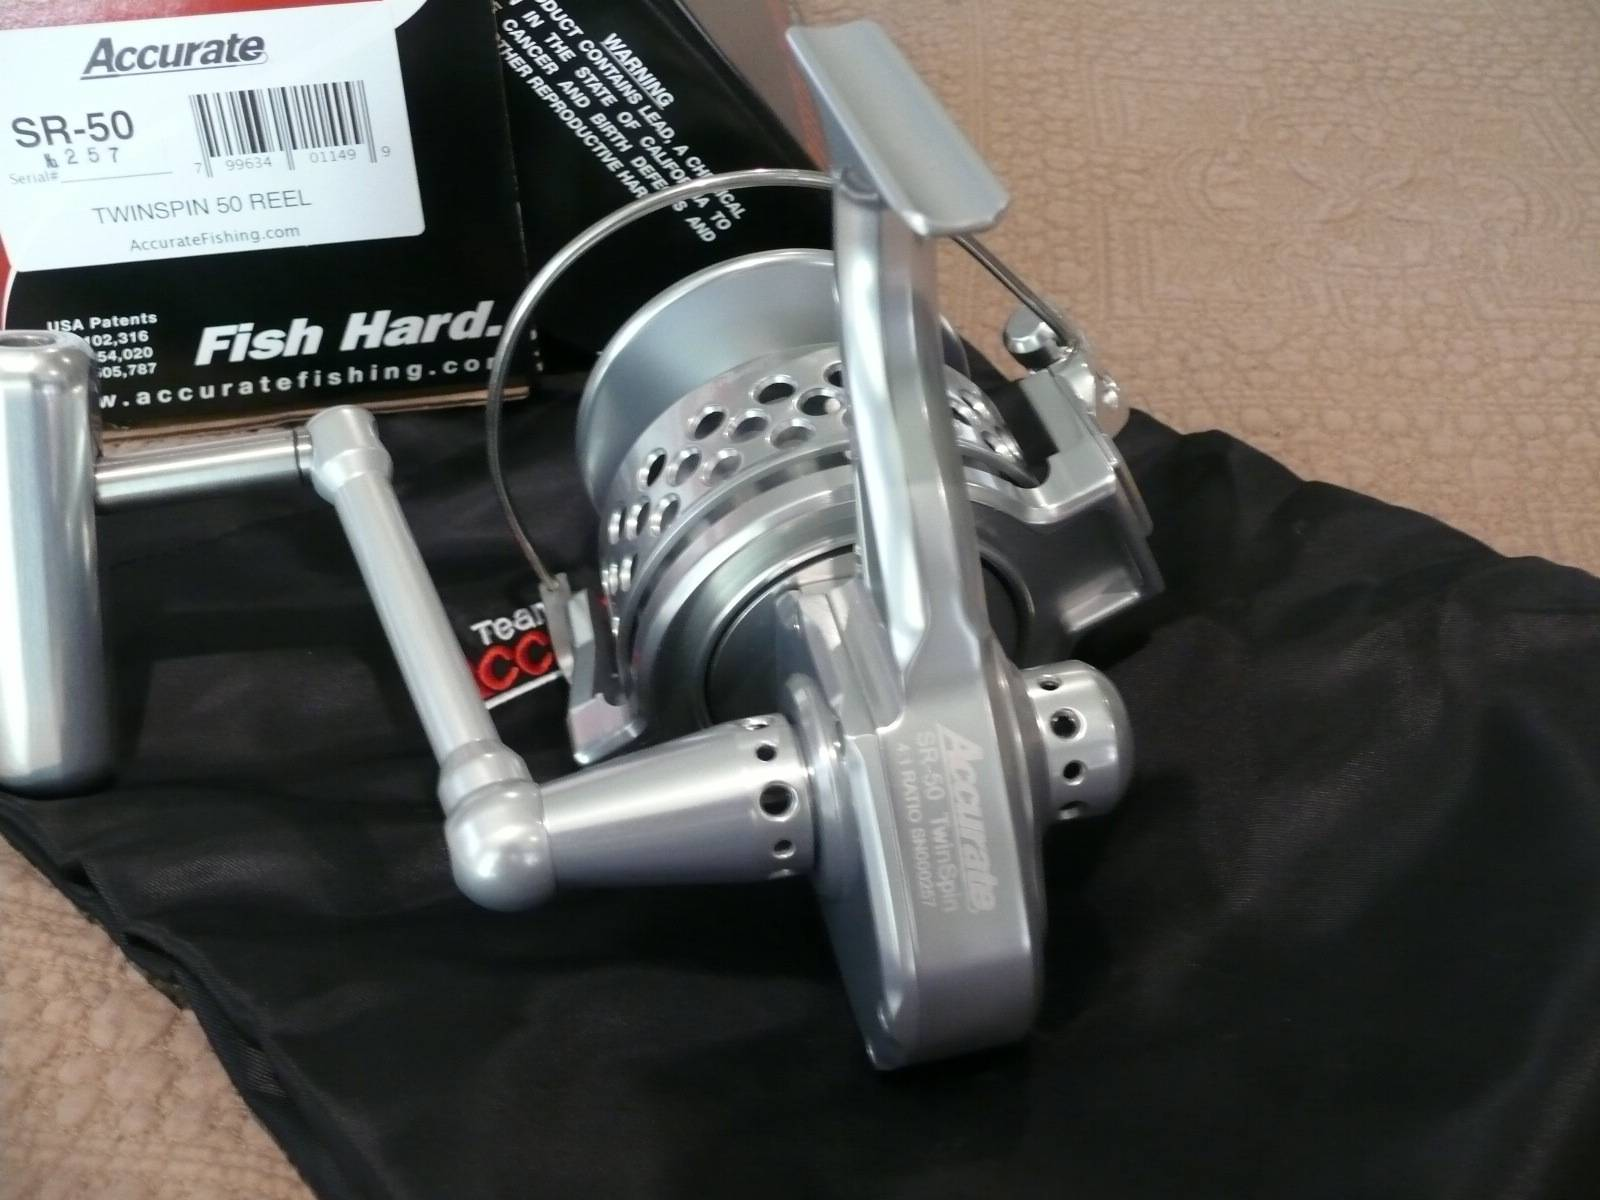 Accurate Twin Spin SR-50 Spinning Reels